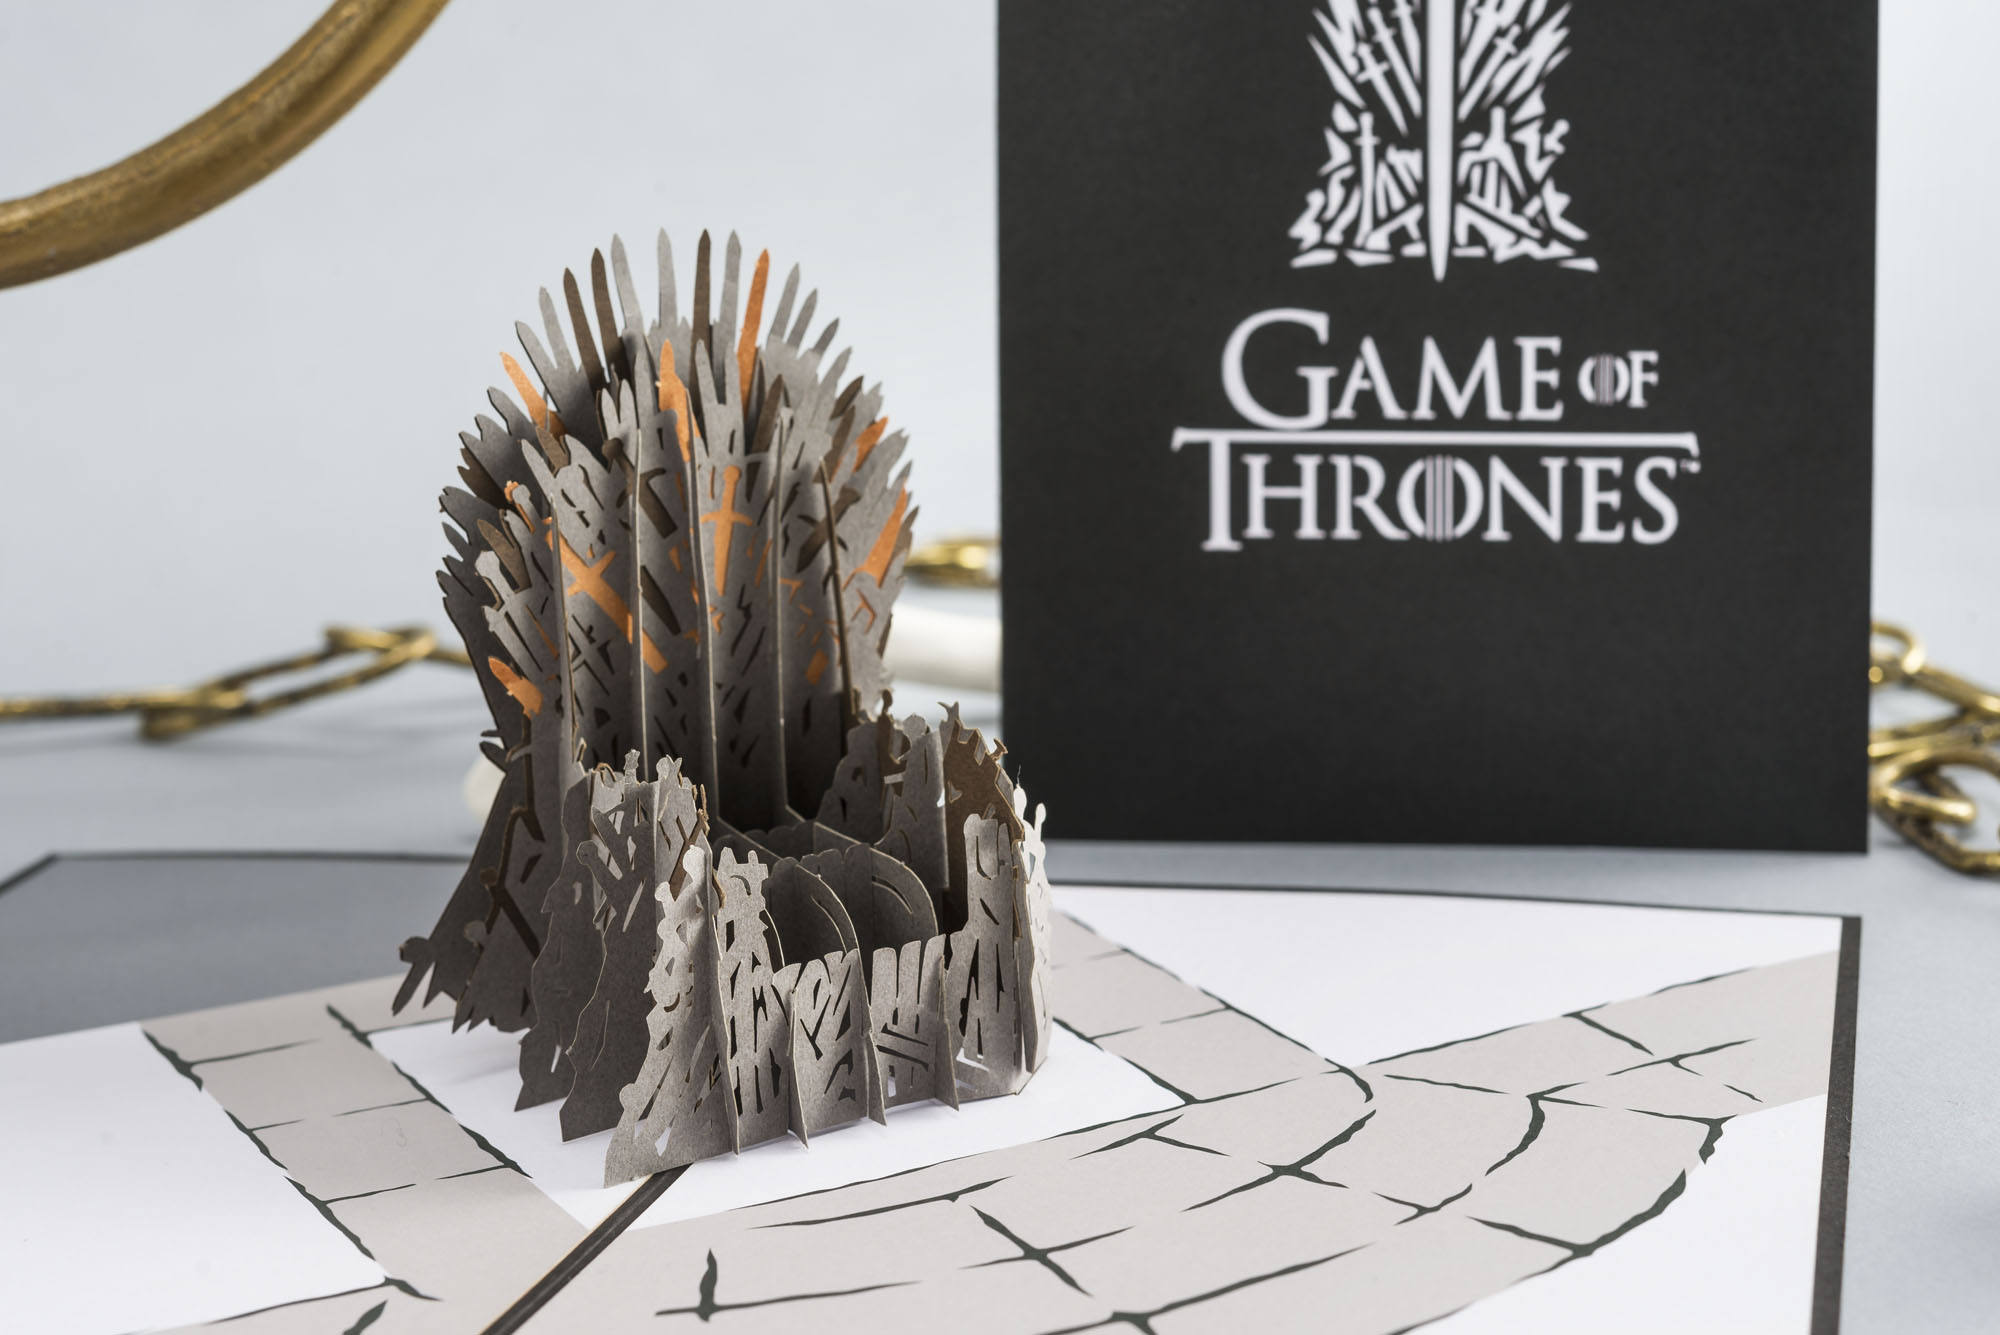 The Iron Throne Game Of Thrones Pop Up Card Game Of Thrones